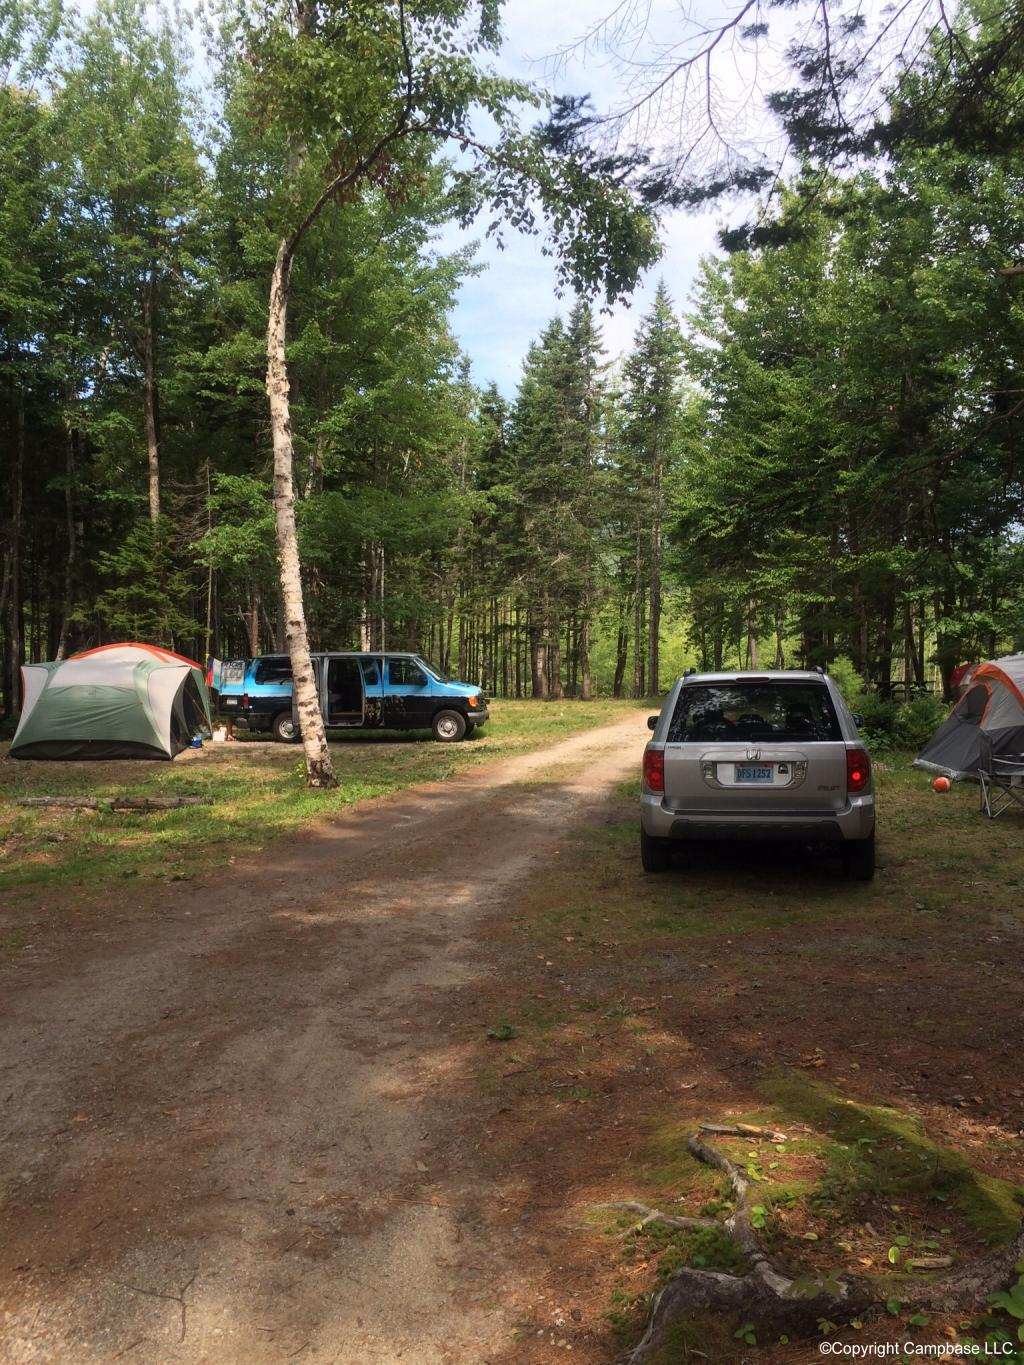 Smugglers den campground southwest harbor maine for Nearby campgrounds with cabins